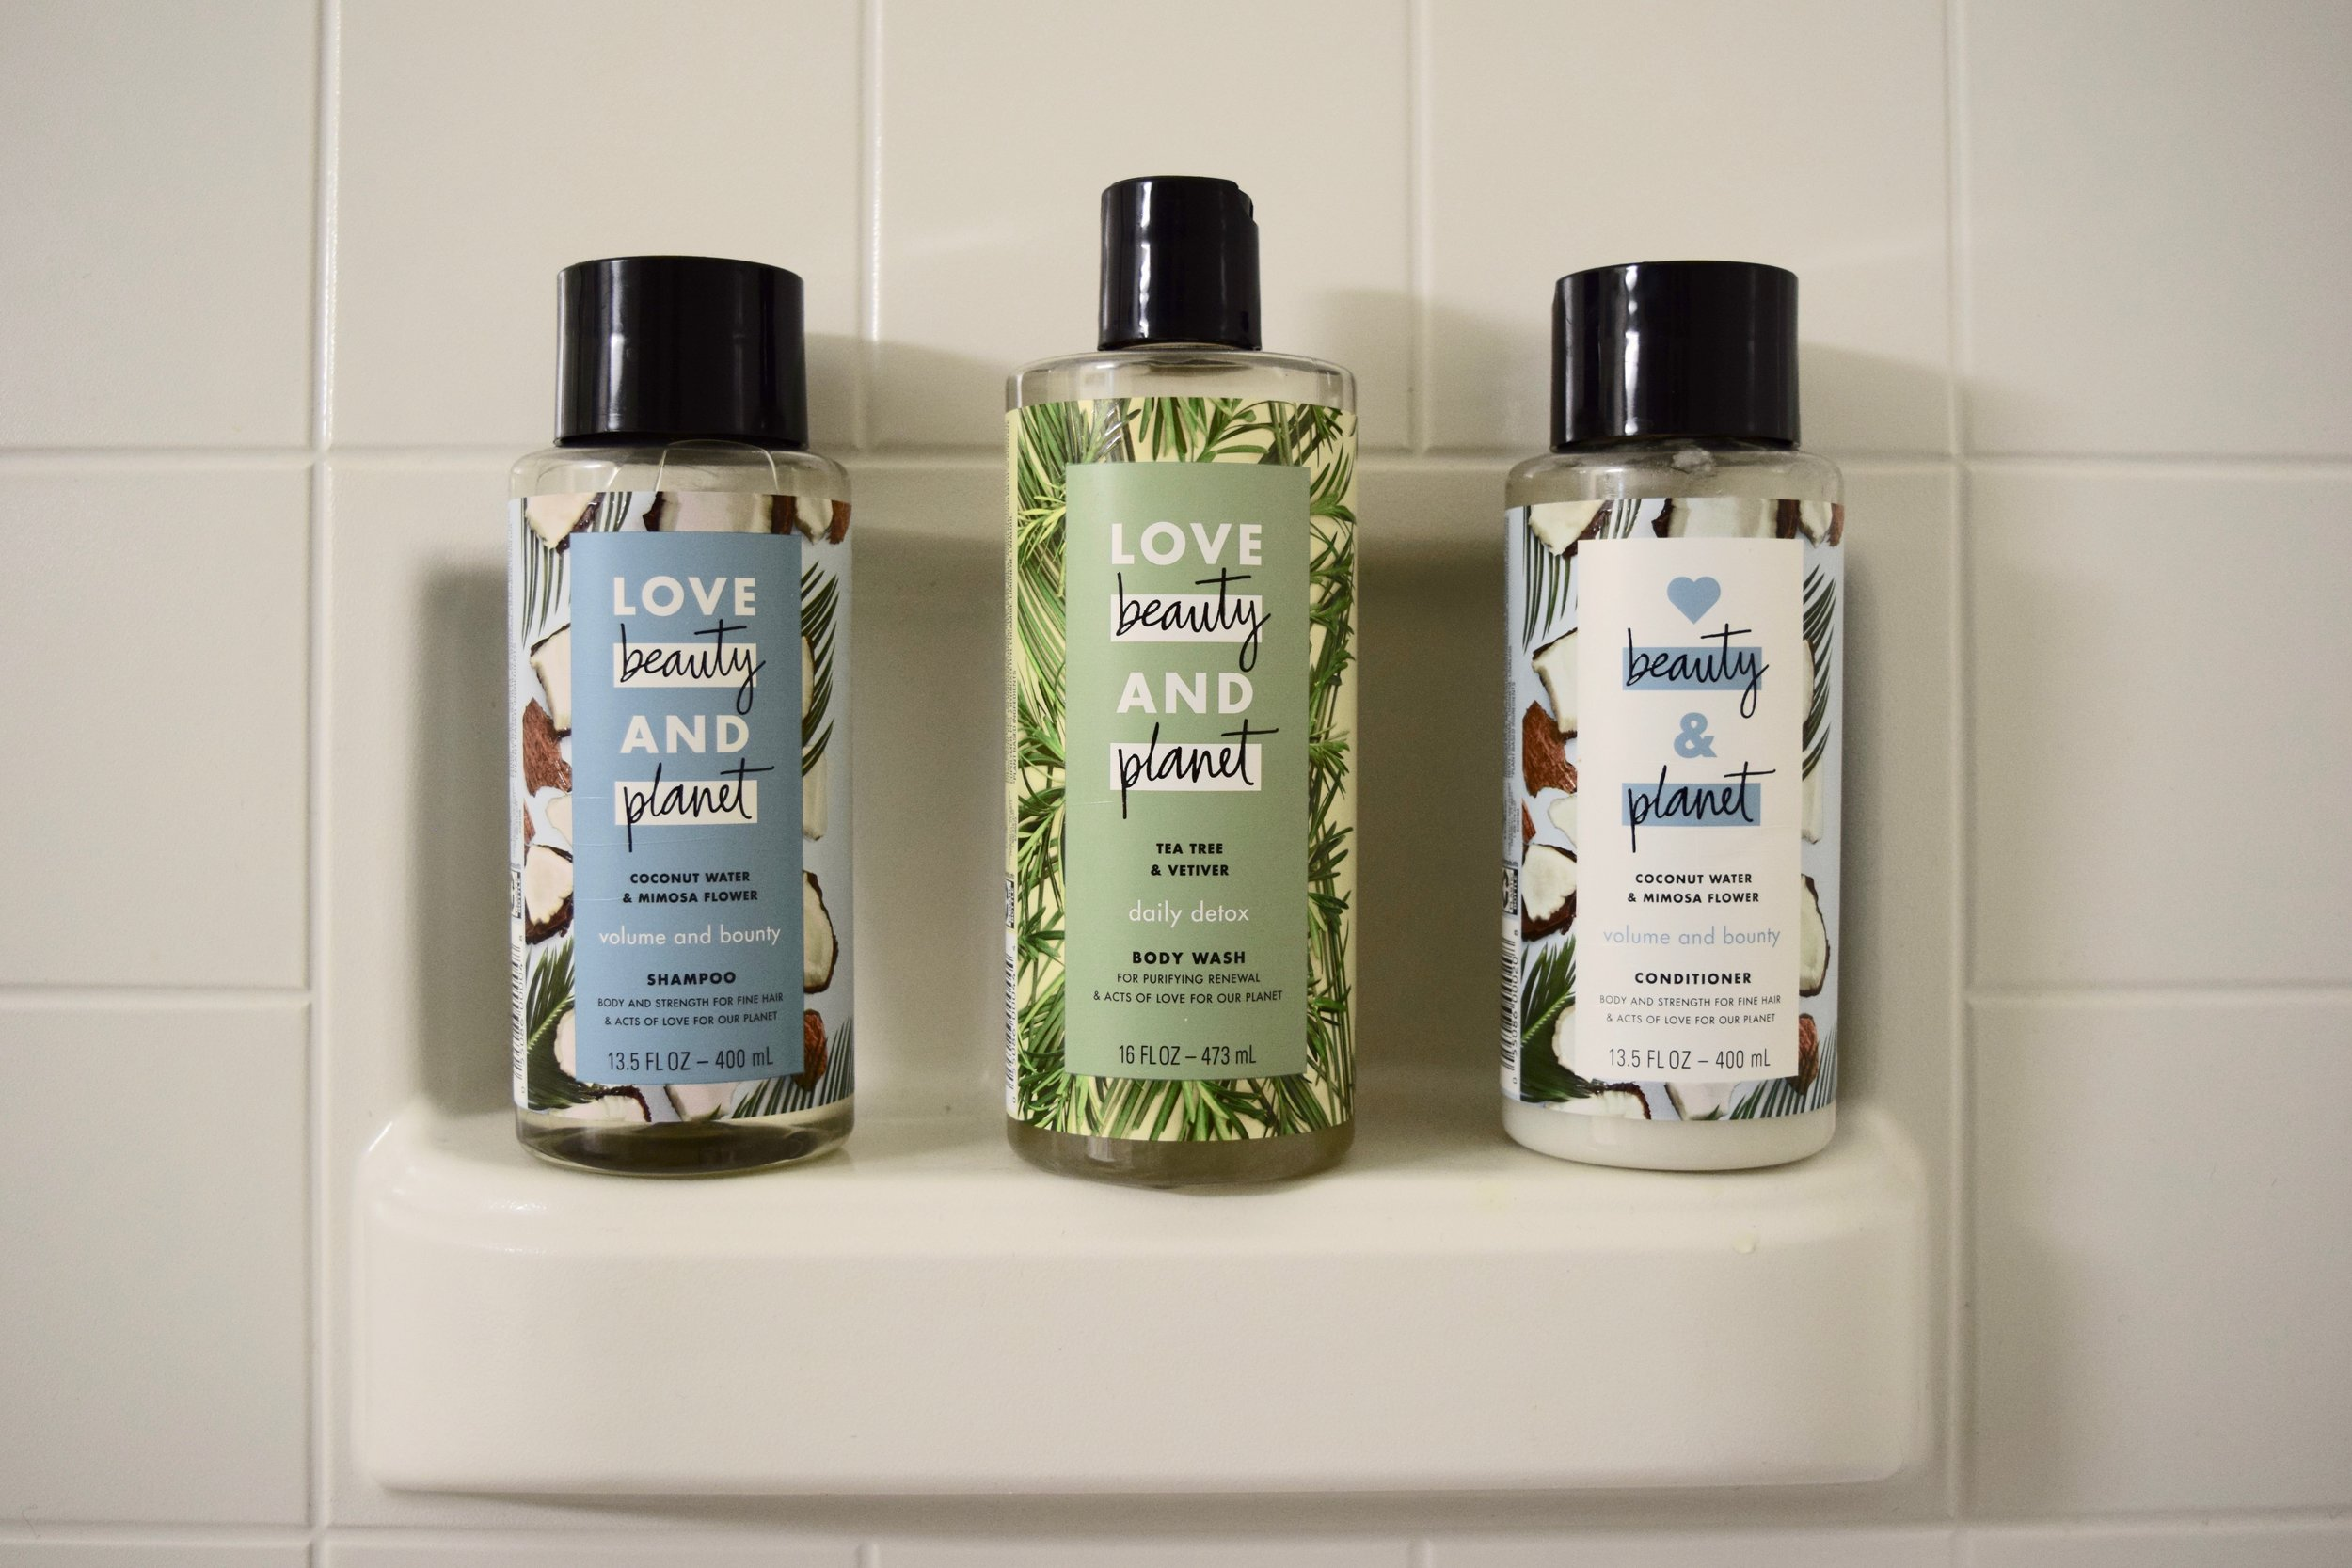 Review on Love Beauty and Plant products